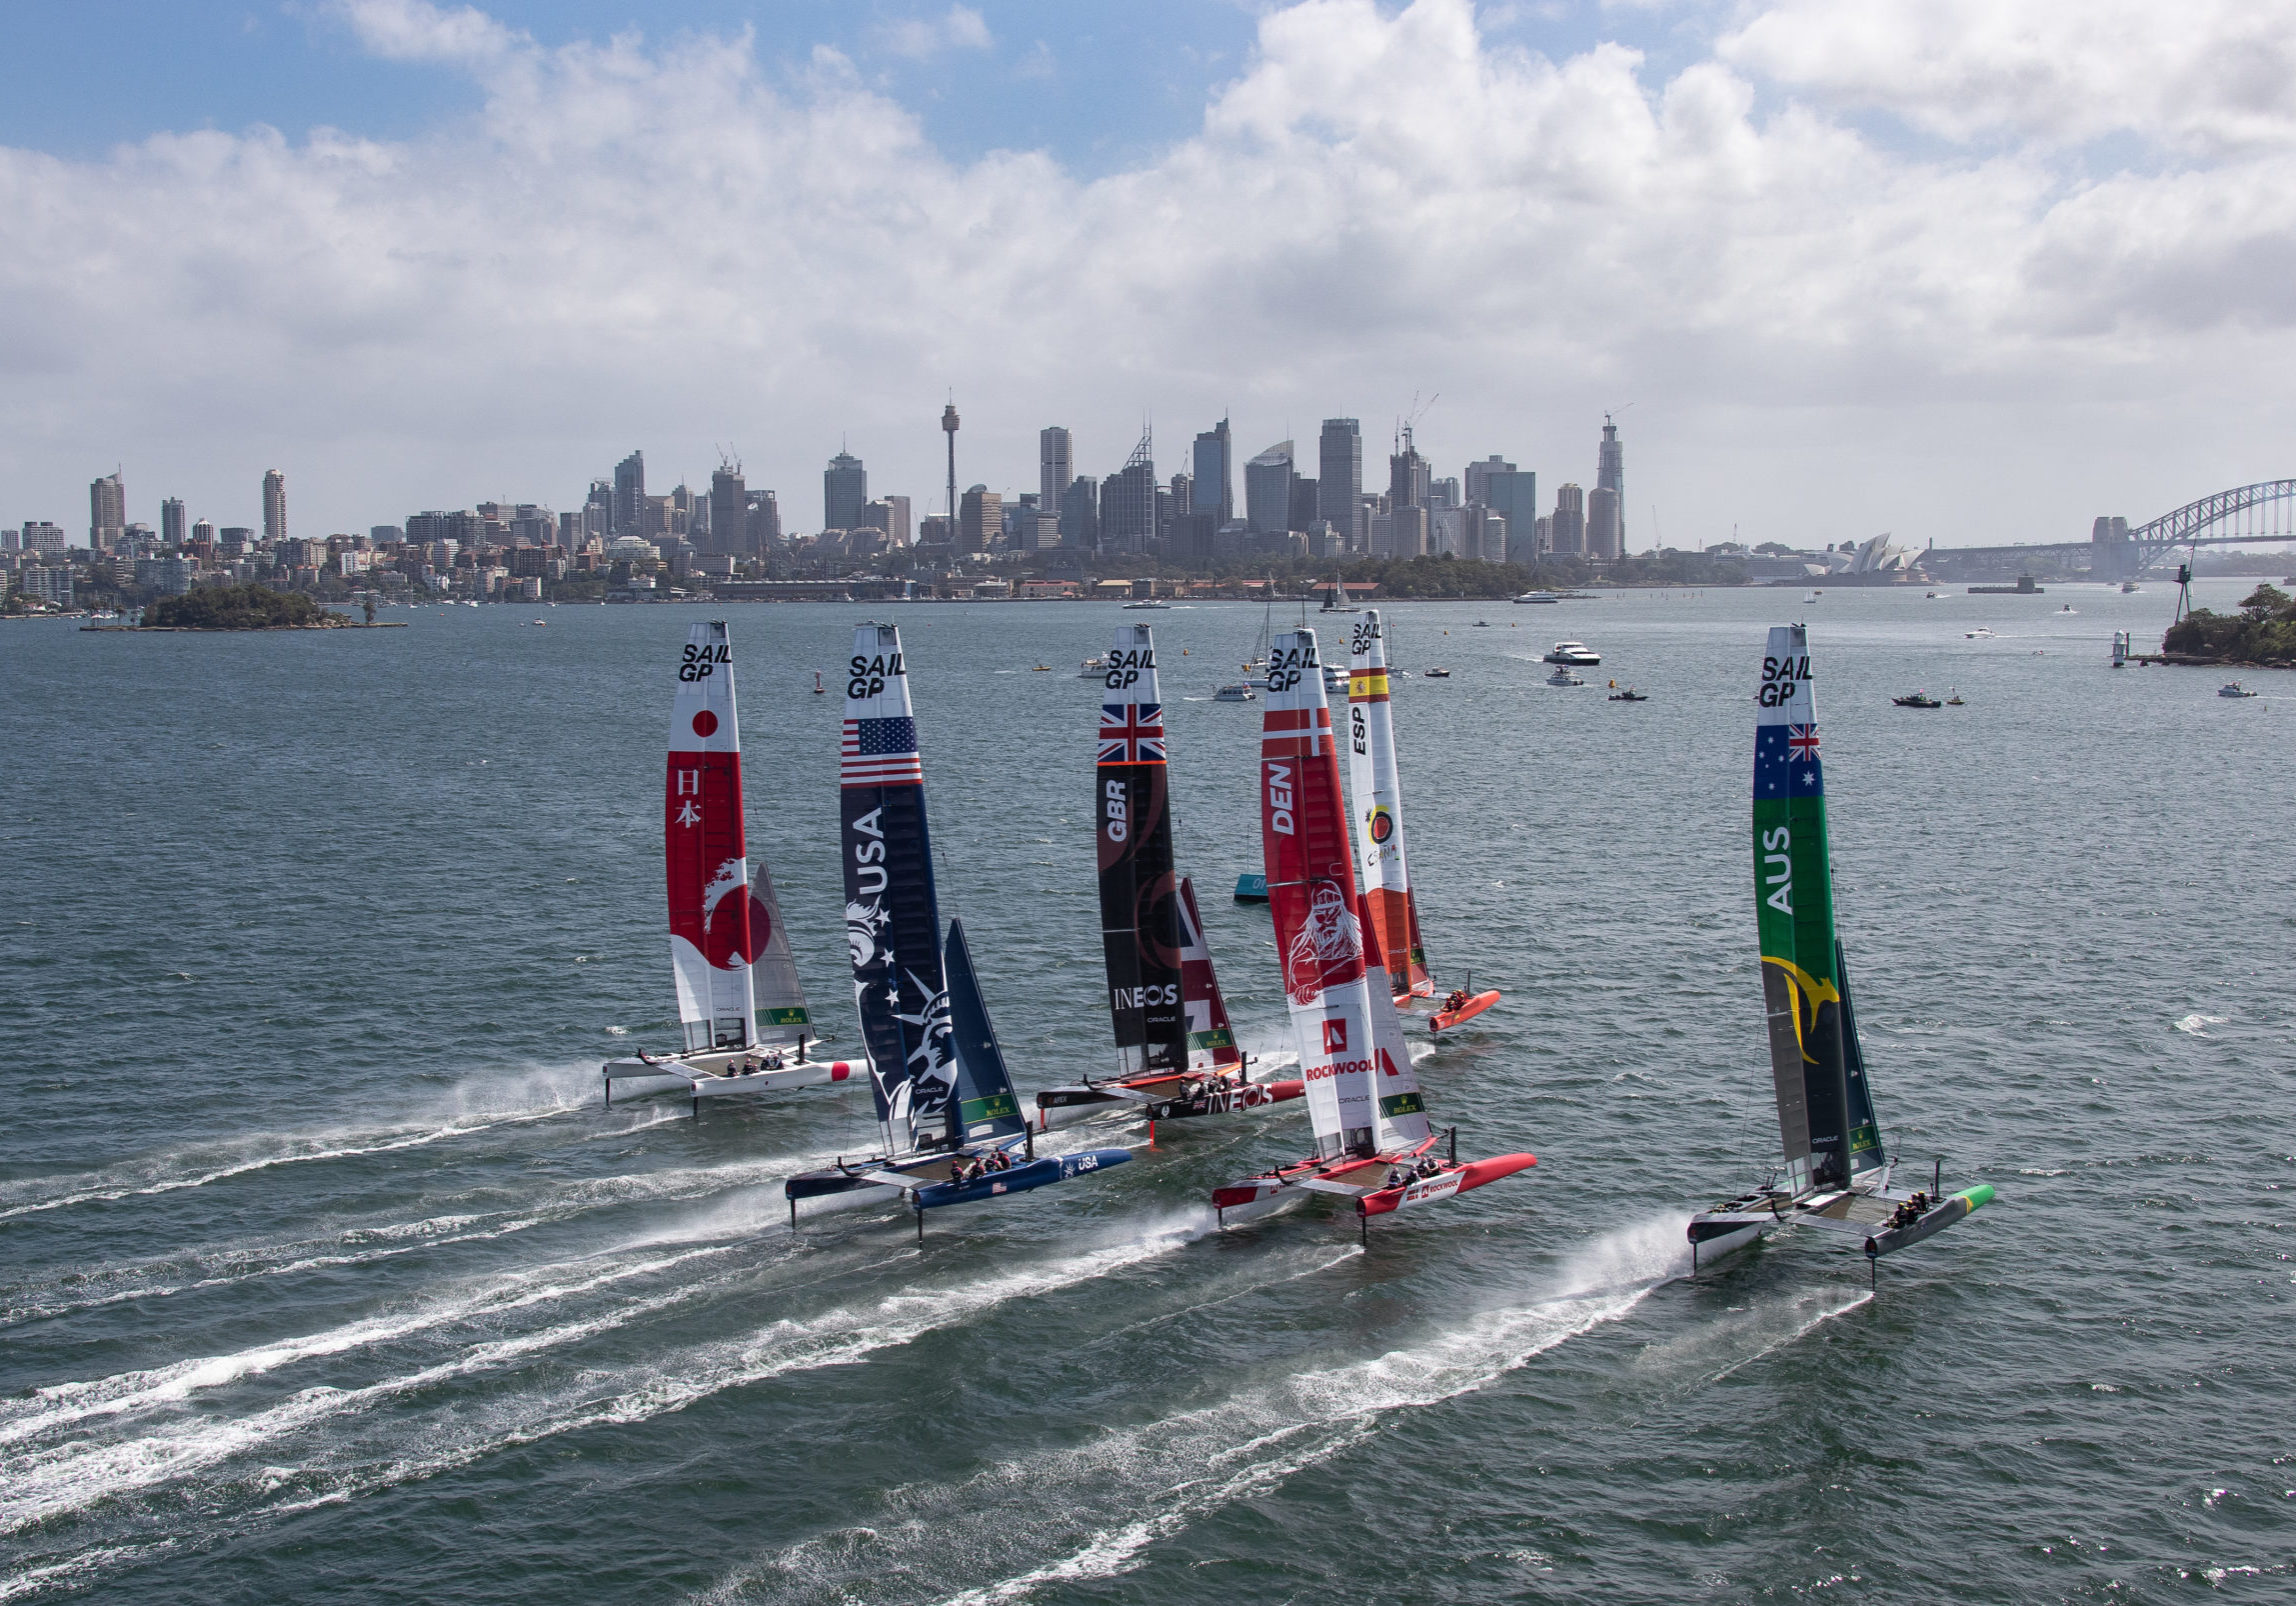 Aerial view of the fleet racing side by side with Sydney Harbour Bridge in the distance, during practice ahead of the Sydney SailGP, Event 1 Season 2 in Sydney Harbour, Sydney, Australia. 27 February 2020. Photo: David Gray for SailGP. Handout image supplied by SailGP